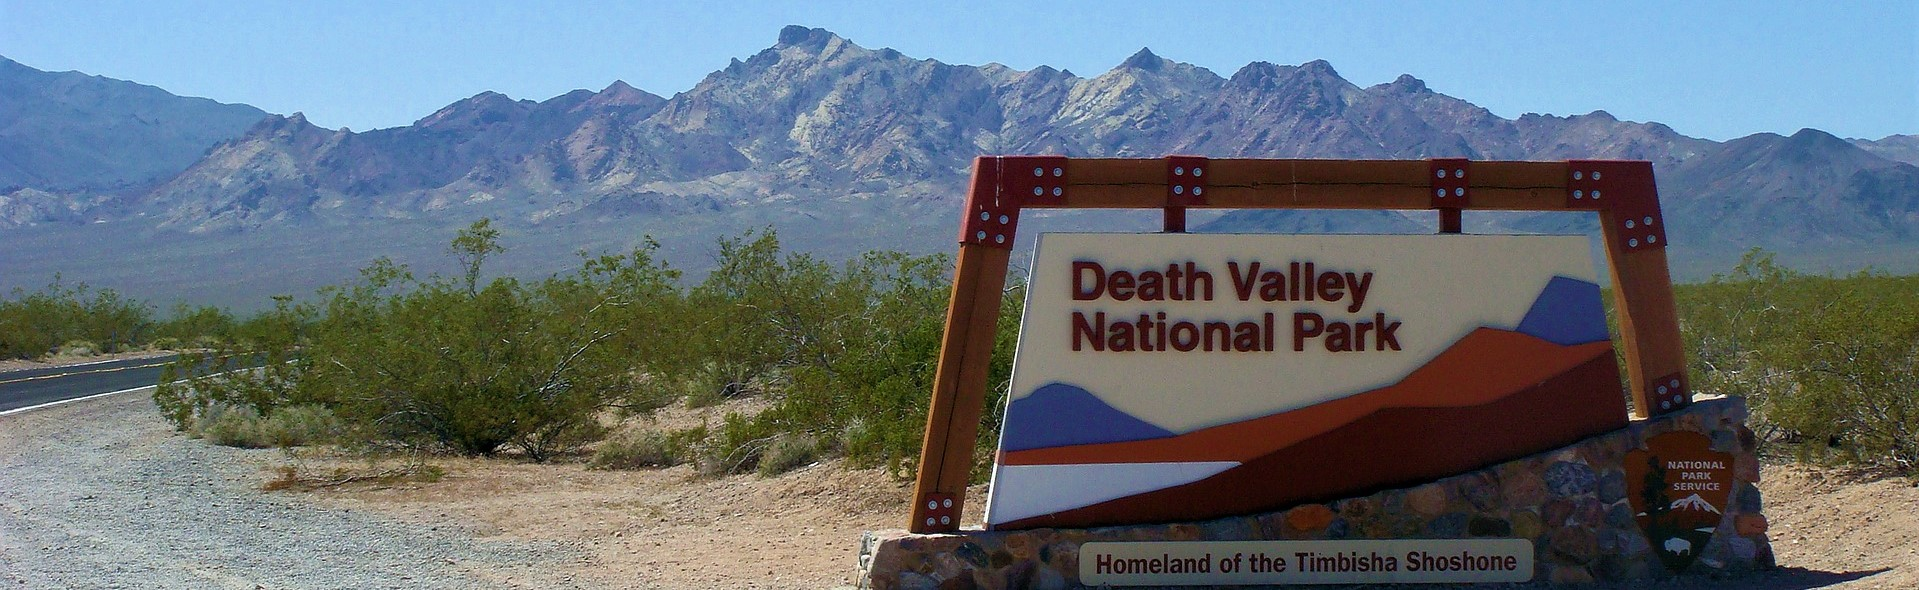 Death Valley National Park in California and Nevada | Breast Cancer Car Donations